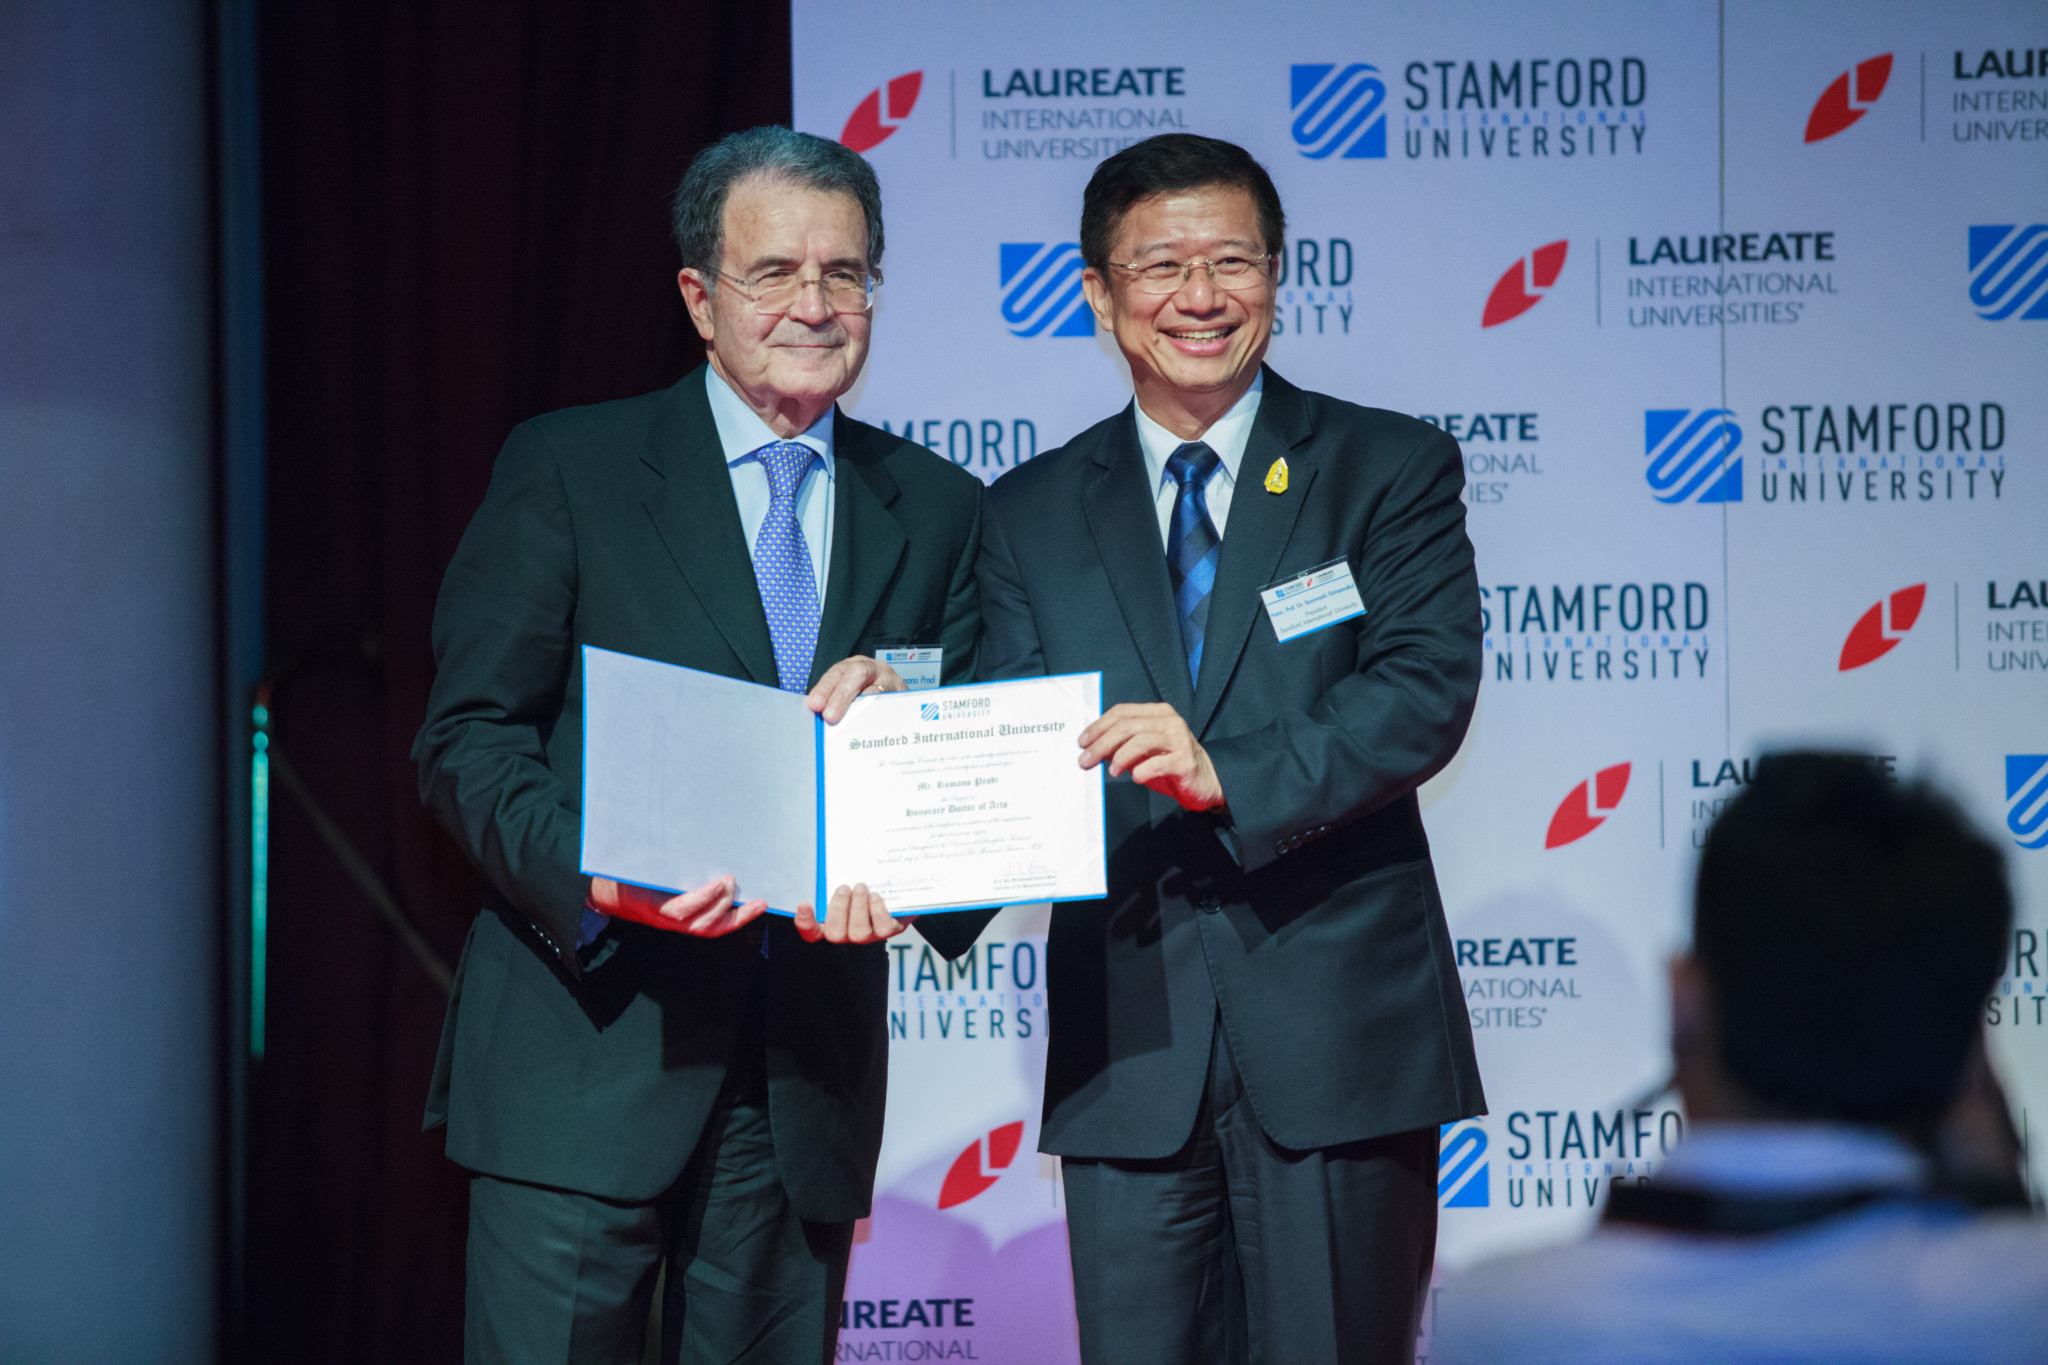 President Romano Prodi being awarded an honorary doctorate degree from Stamford International University in Bangko